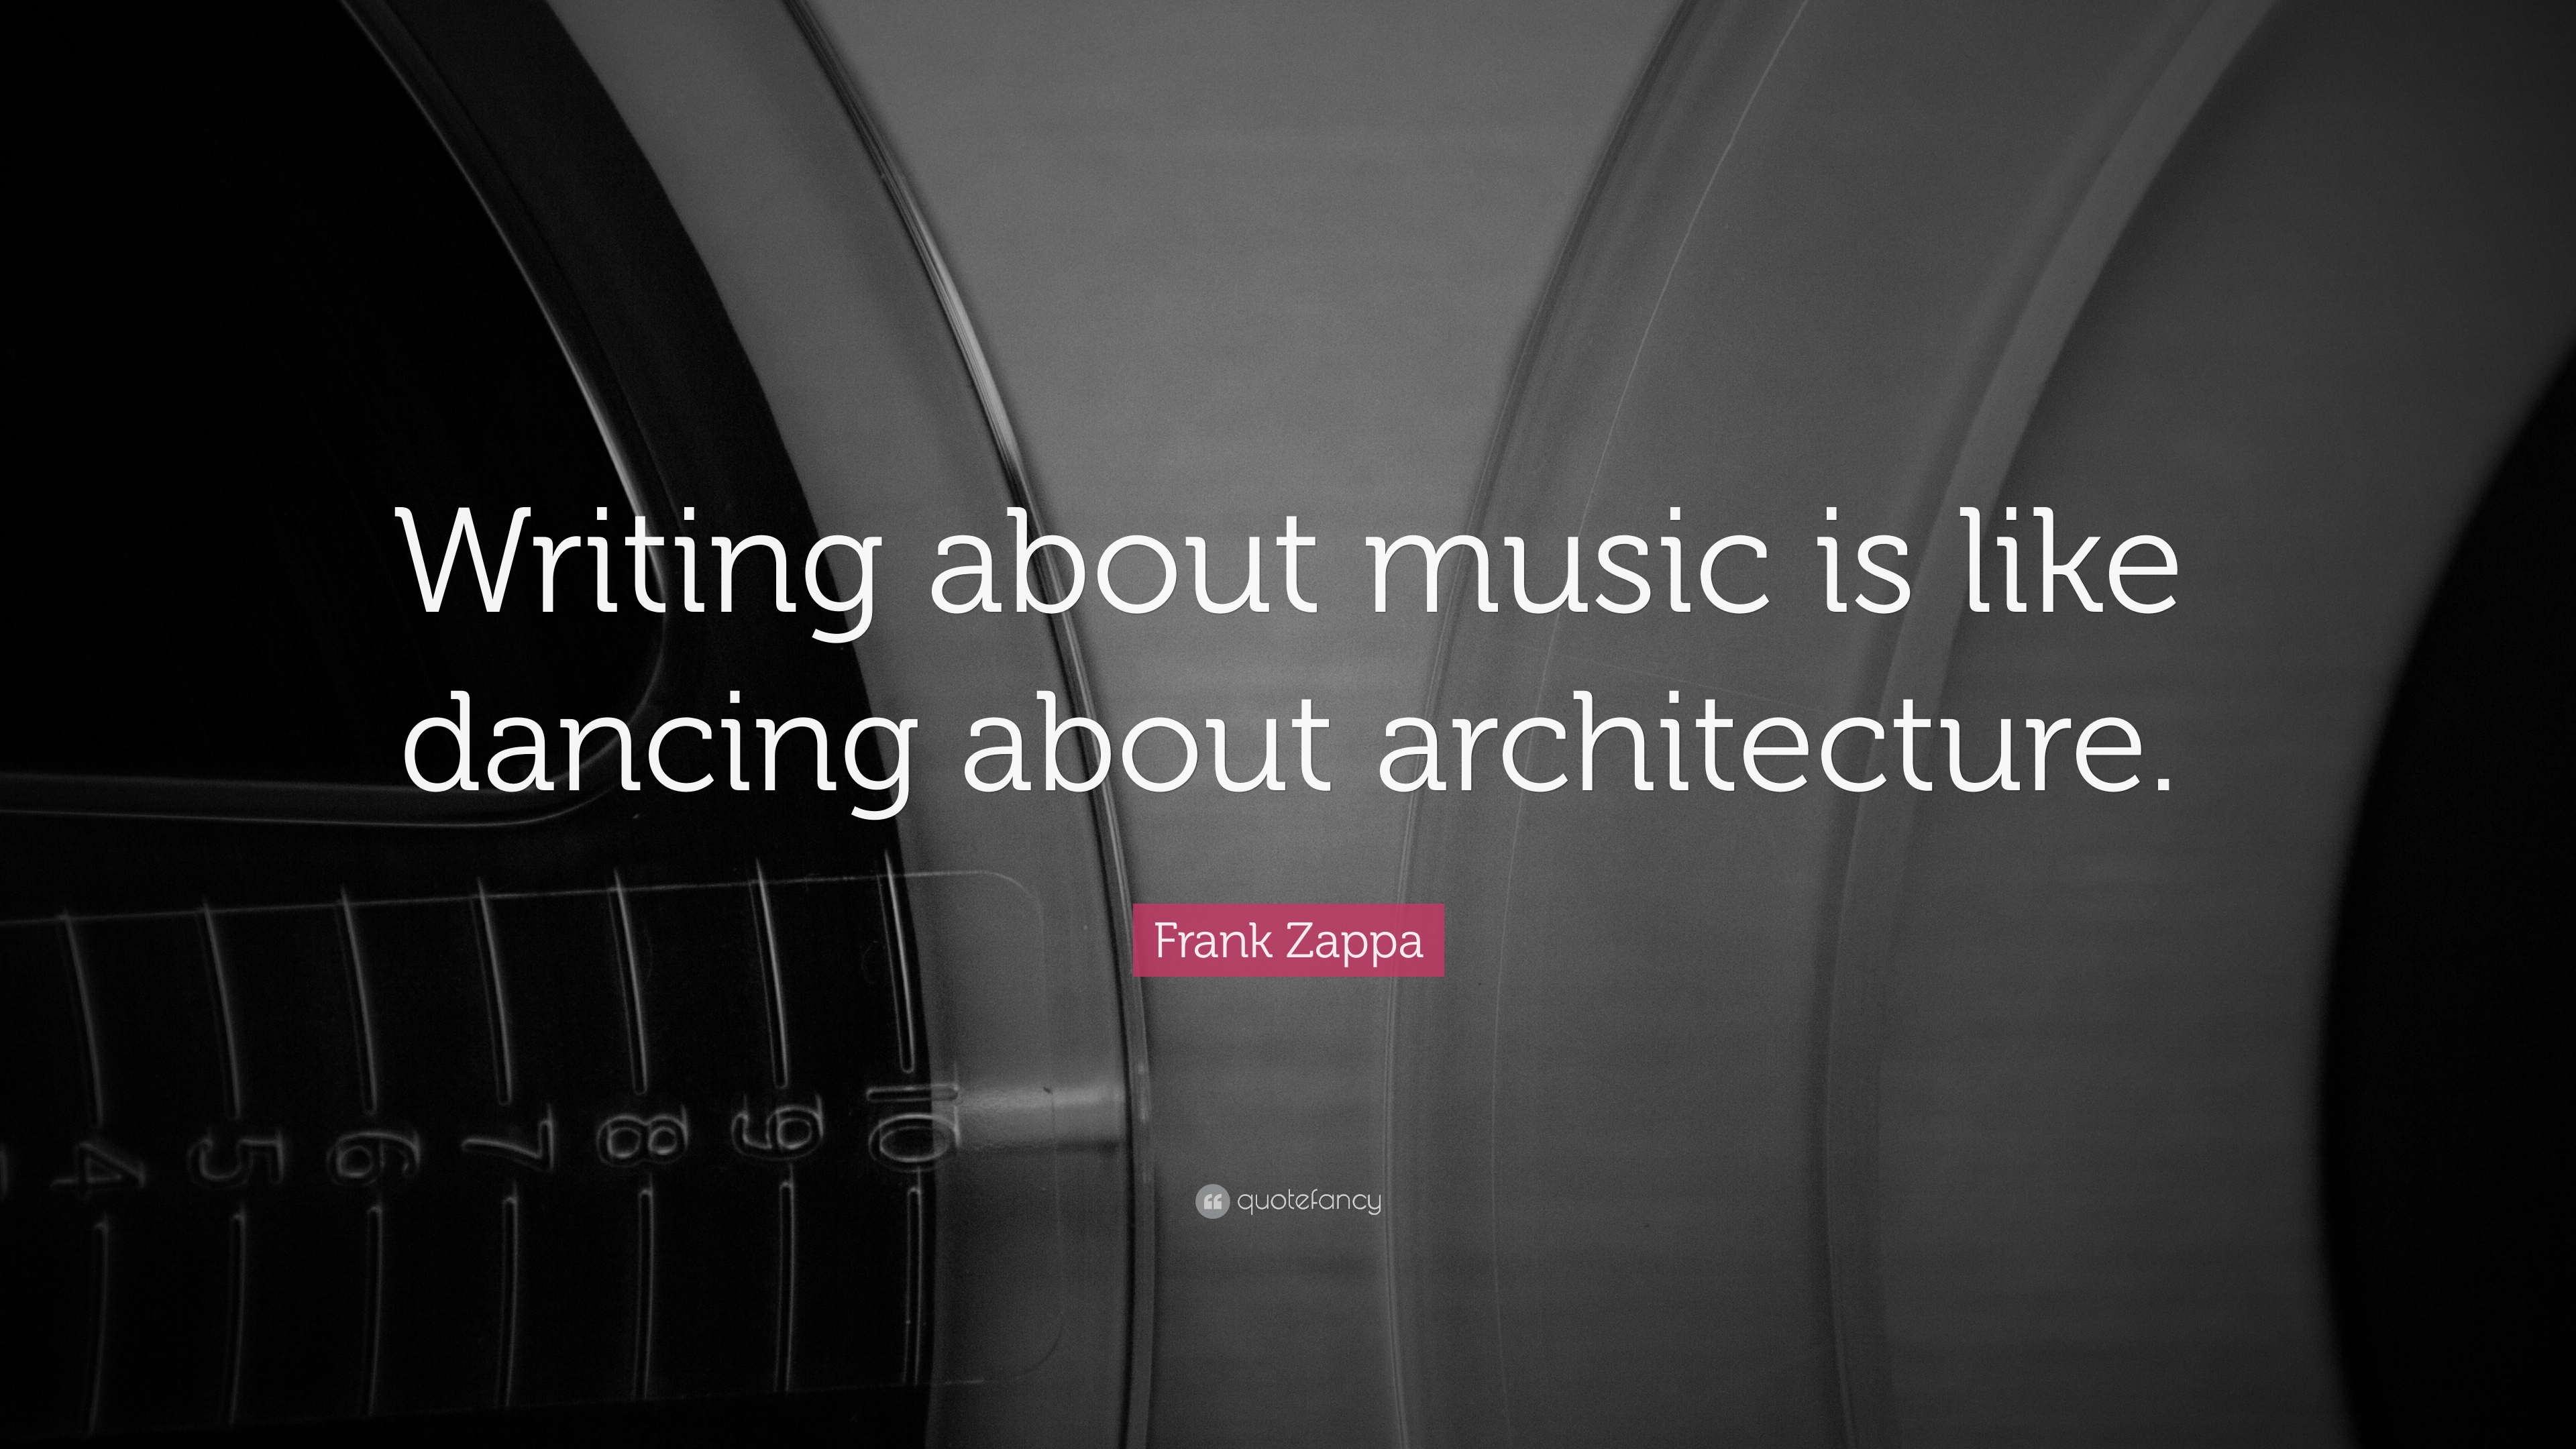 Writing about music is like